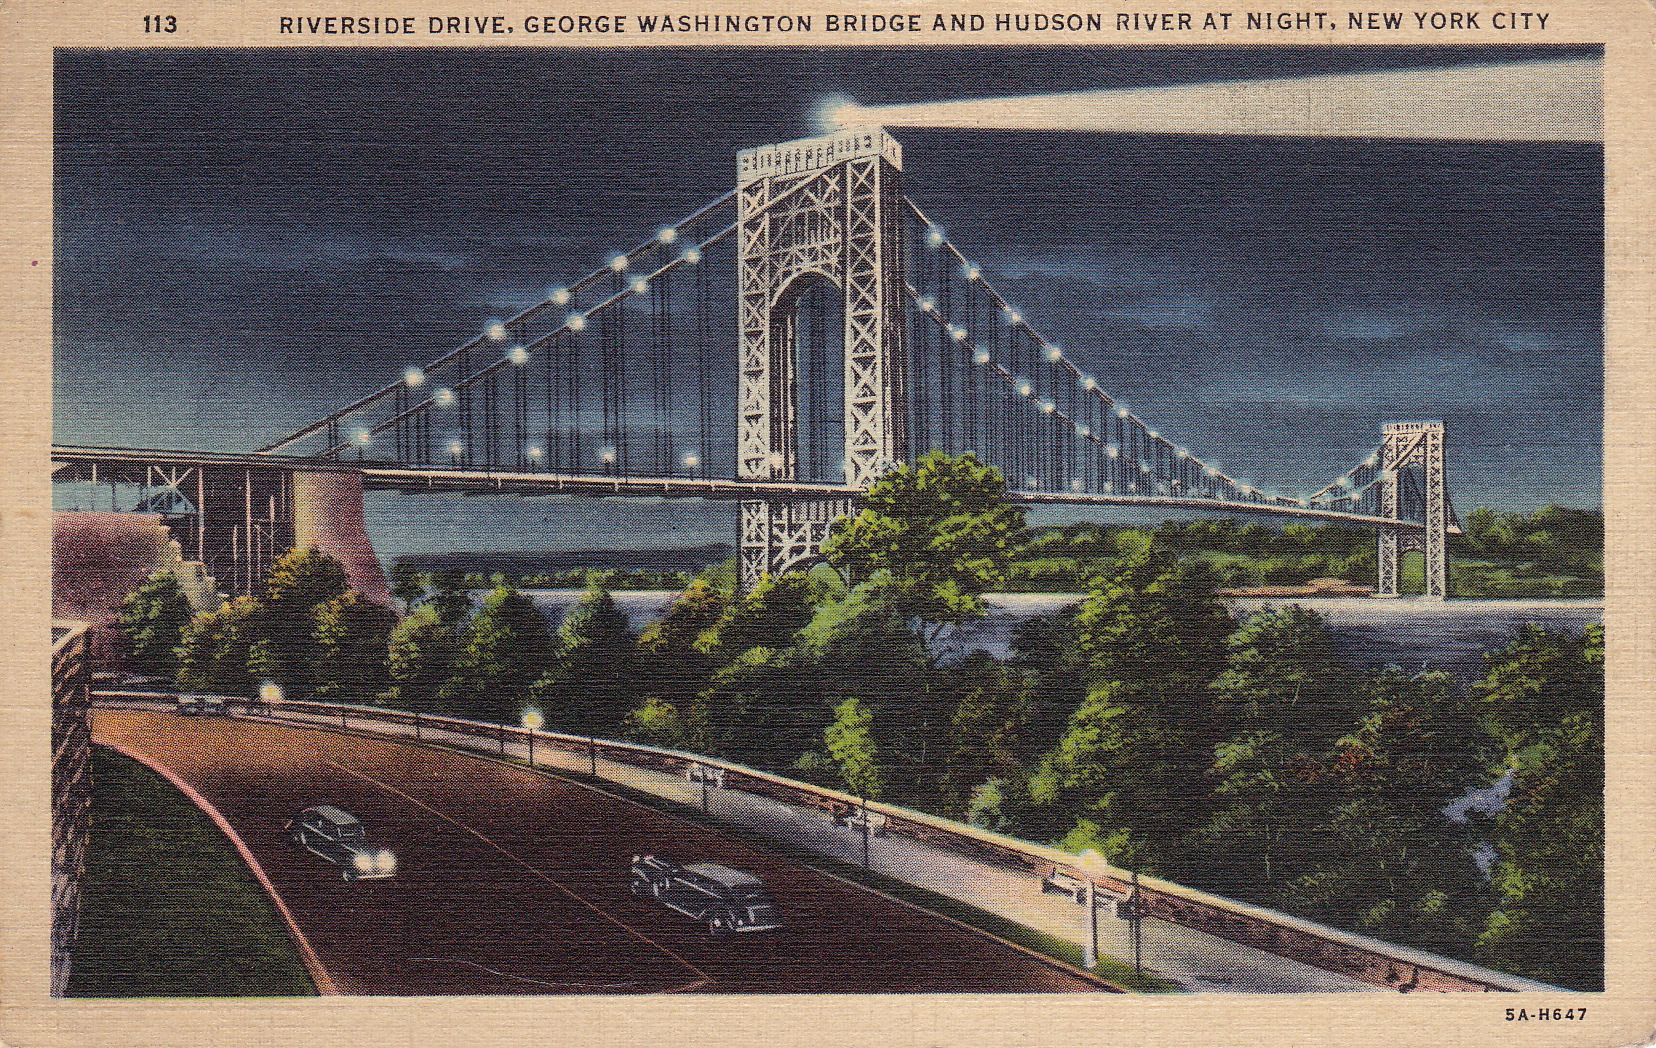 This postcard showing the Great Gray Bridge, aka the George Washington Bridge, was mailed from NYC to an address in Pennsylvania in 1938.